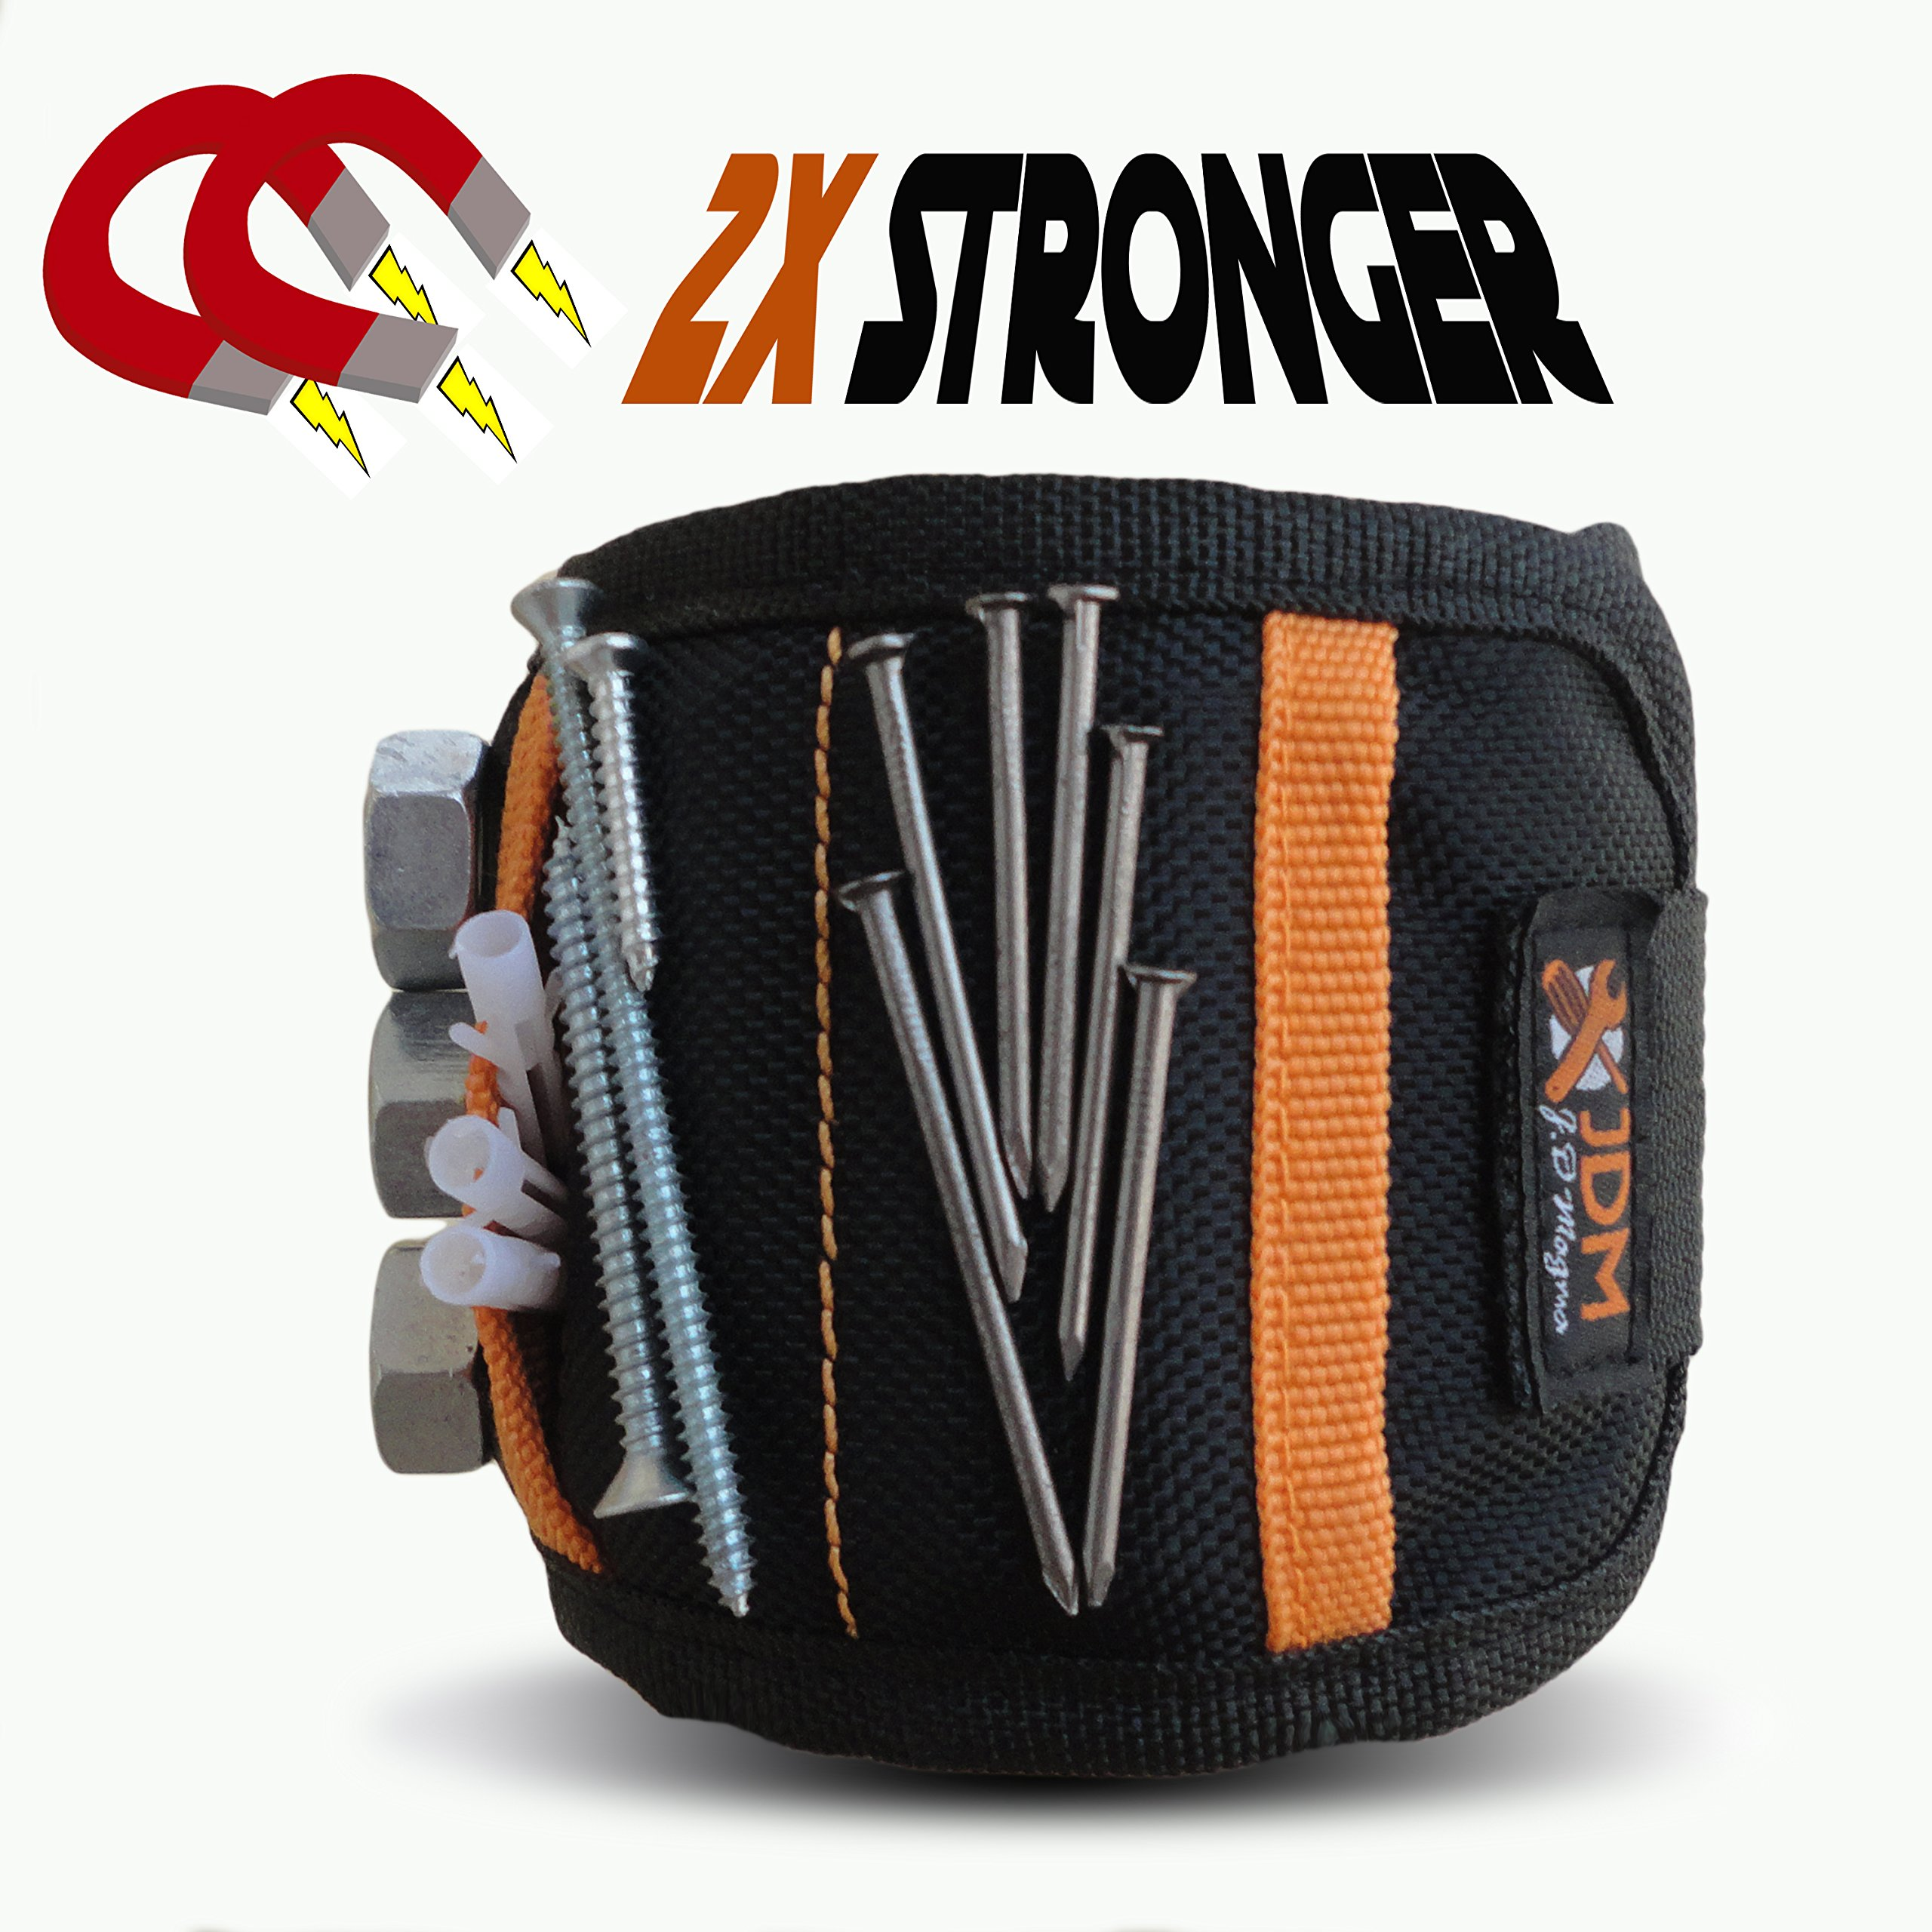 Upgraded Powerful Magnetic Wristband with Pockets for Holding Tools 15 Strong Magnets with Magnetic Plate Durable Adjustable Tool Holder Black DIY Best Gift for Men, Father/Dad, Him, DIY, Women